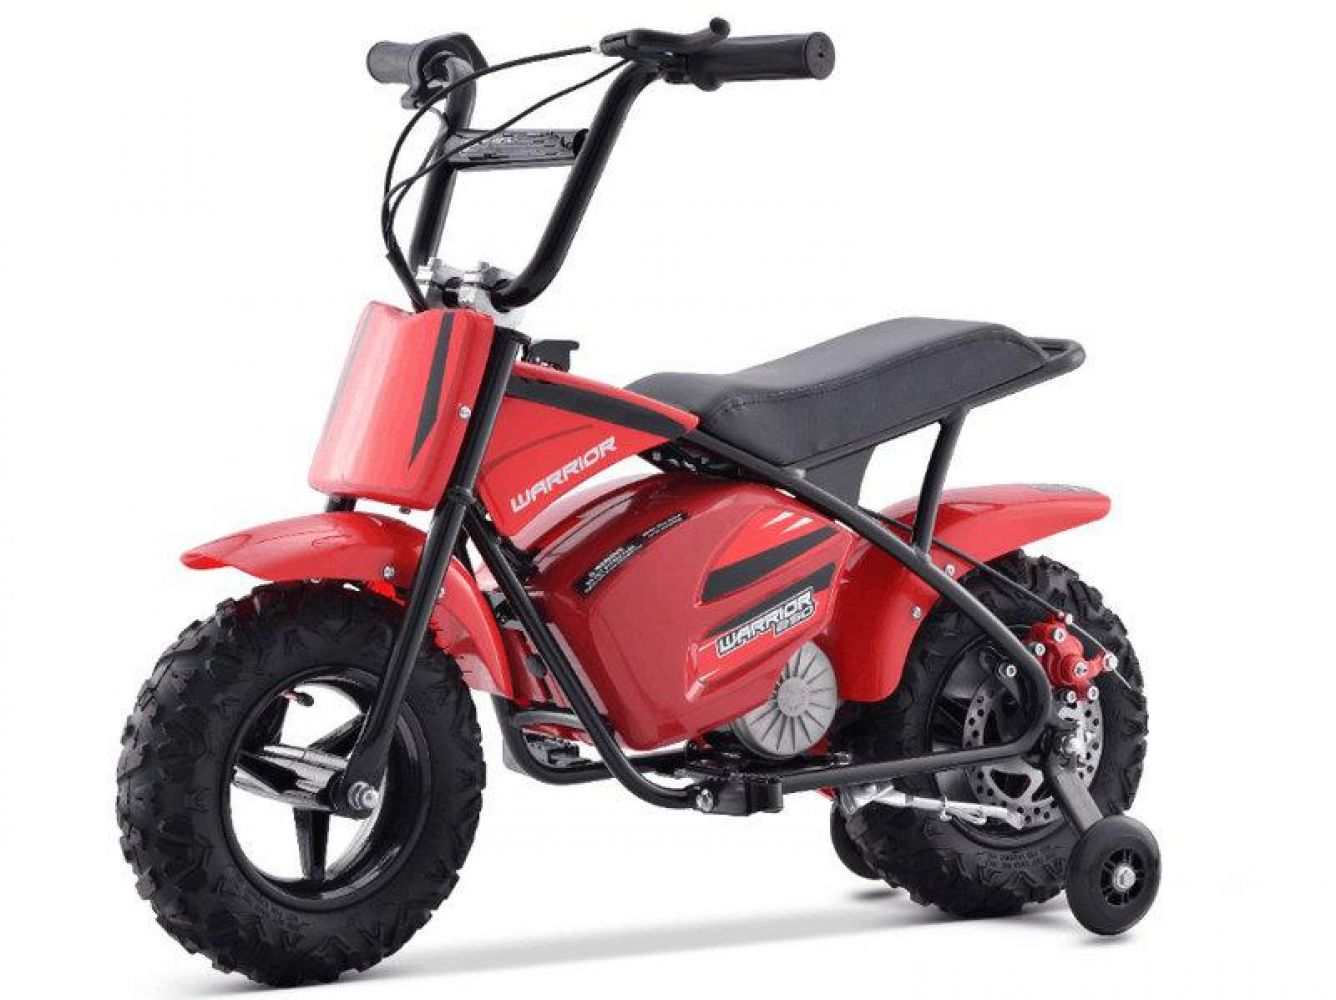 WARRIOR MONKEY MINI DIRT BIKE 24VOLT